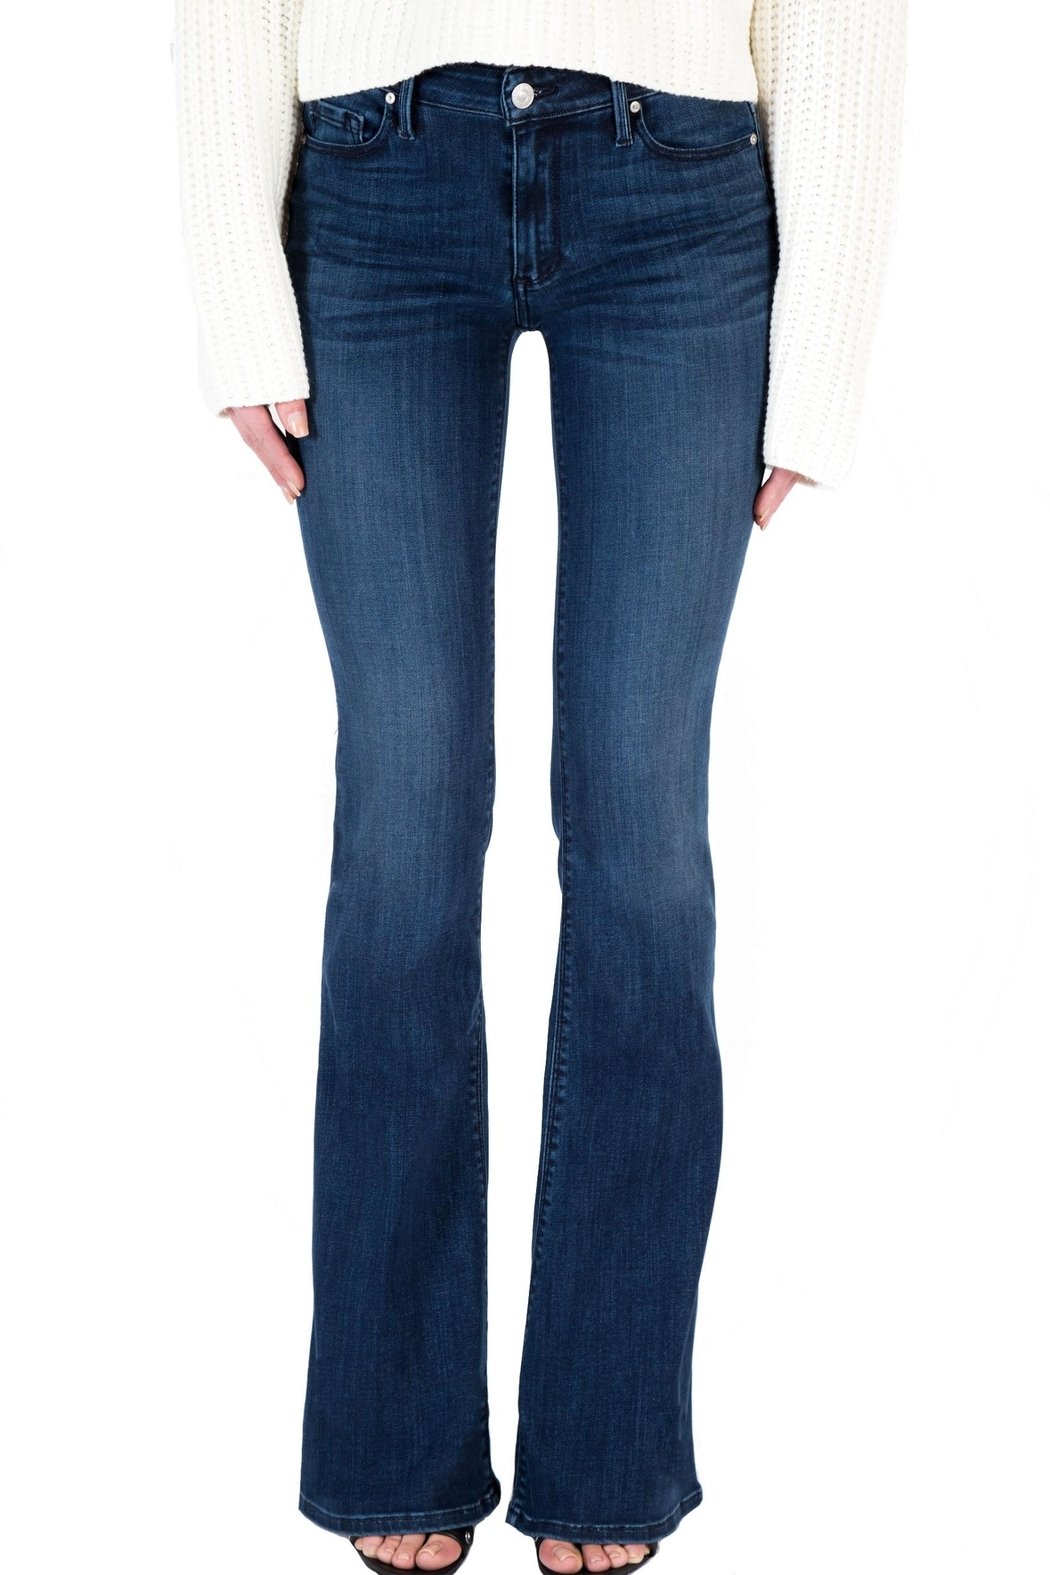 Black Orchid Denim Mia Mid Rise Skinny Flare Denim - Front Cropped Image